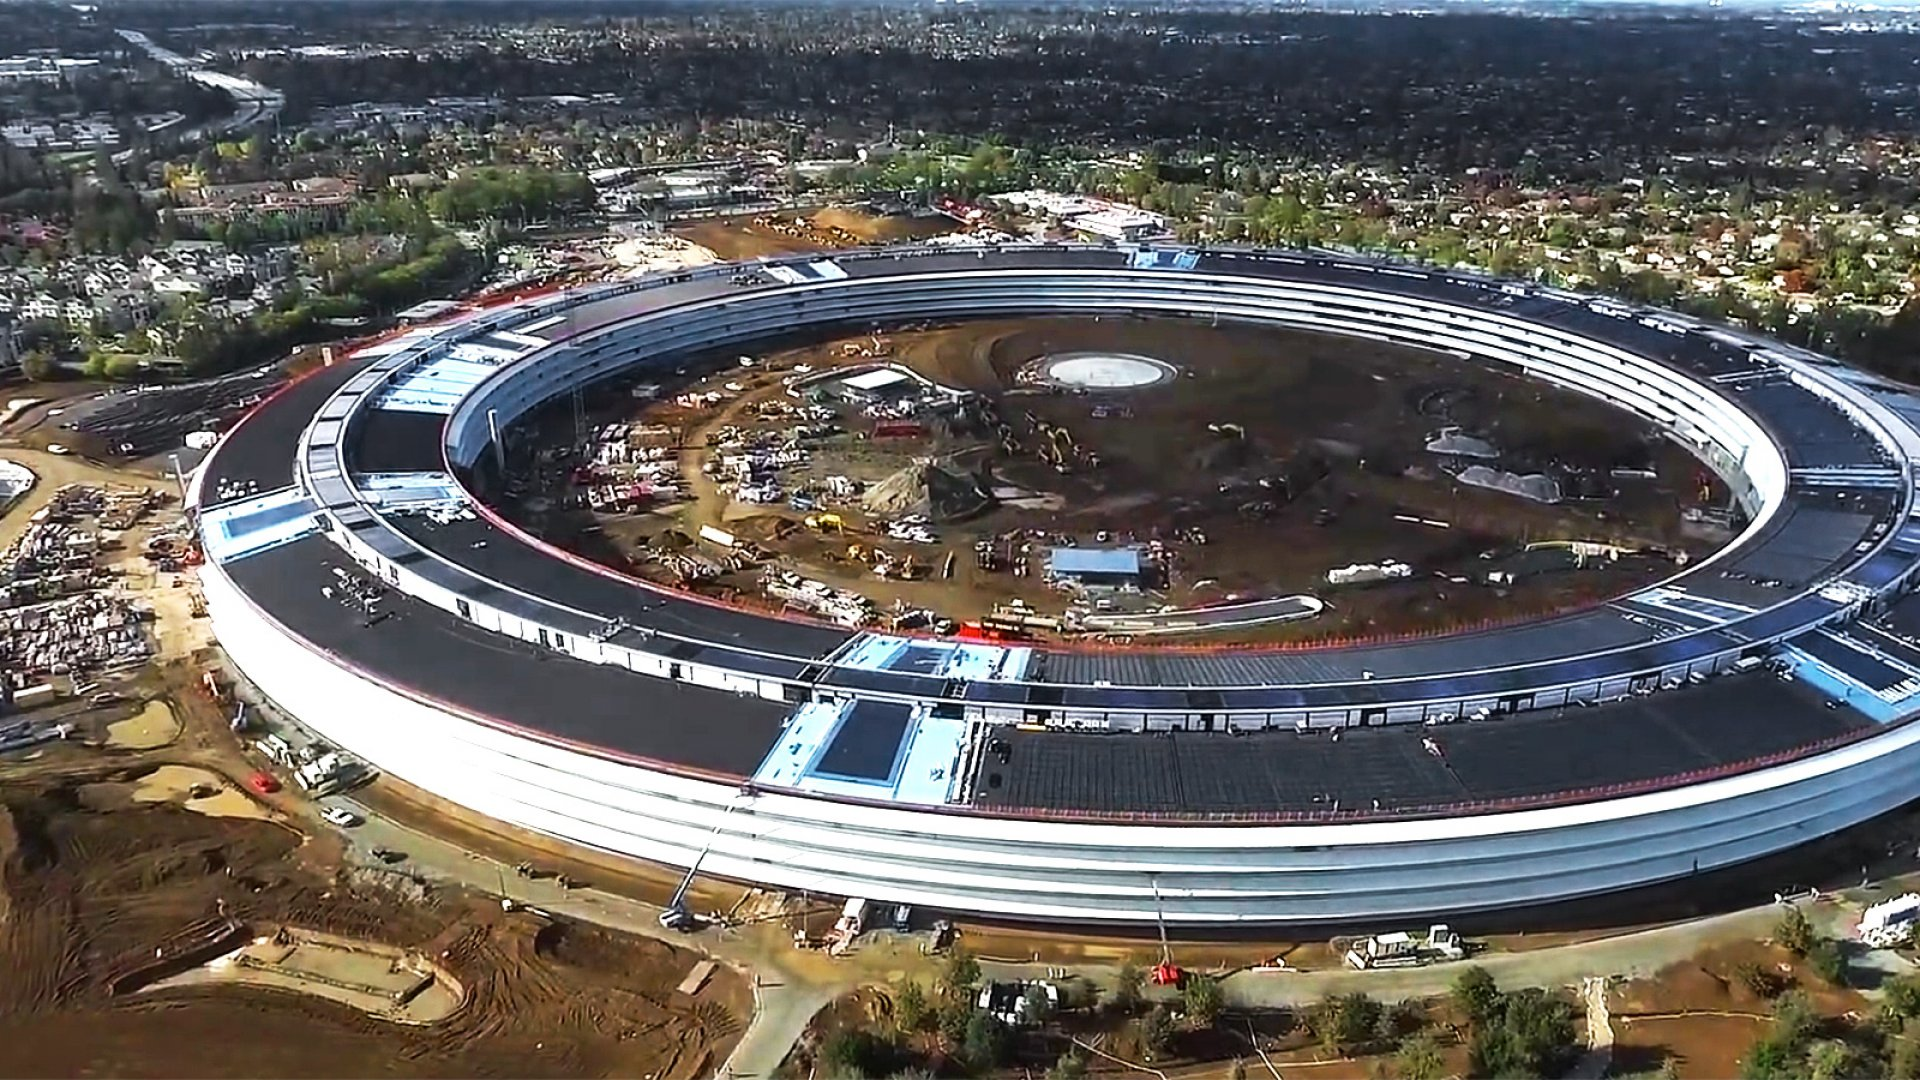 Apple's new campus, Apple Park.